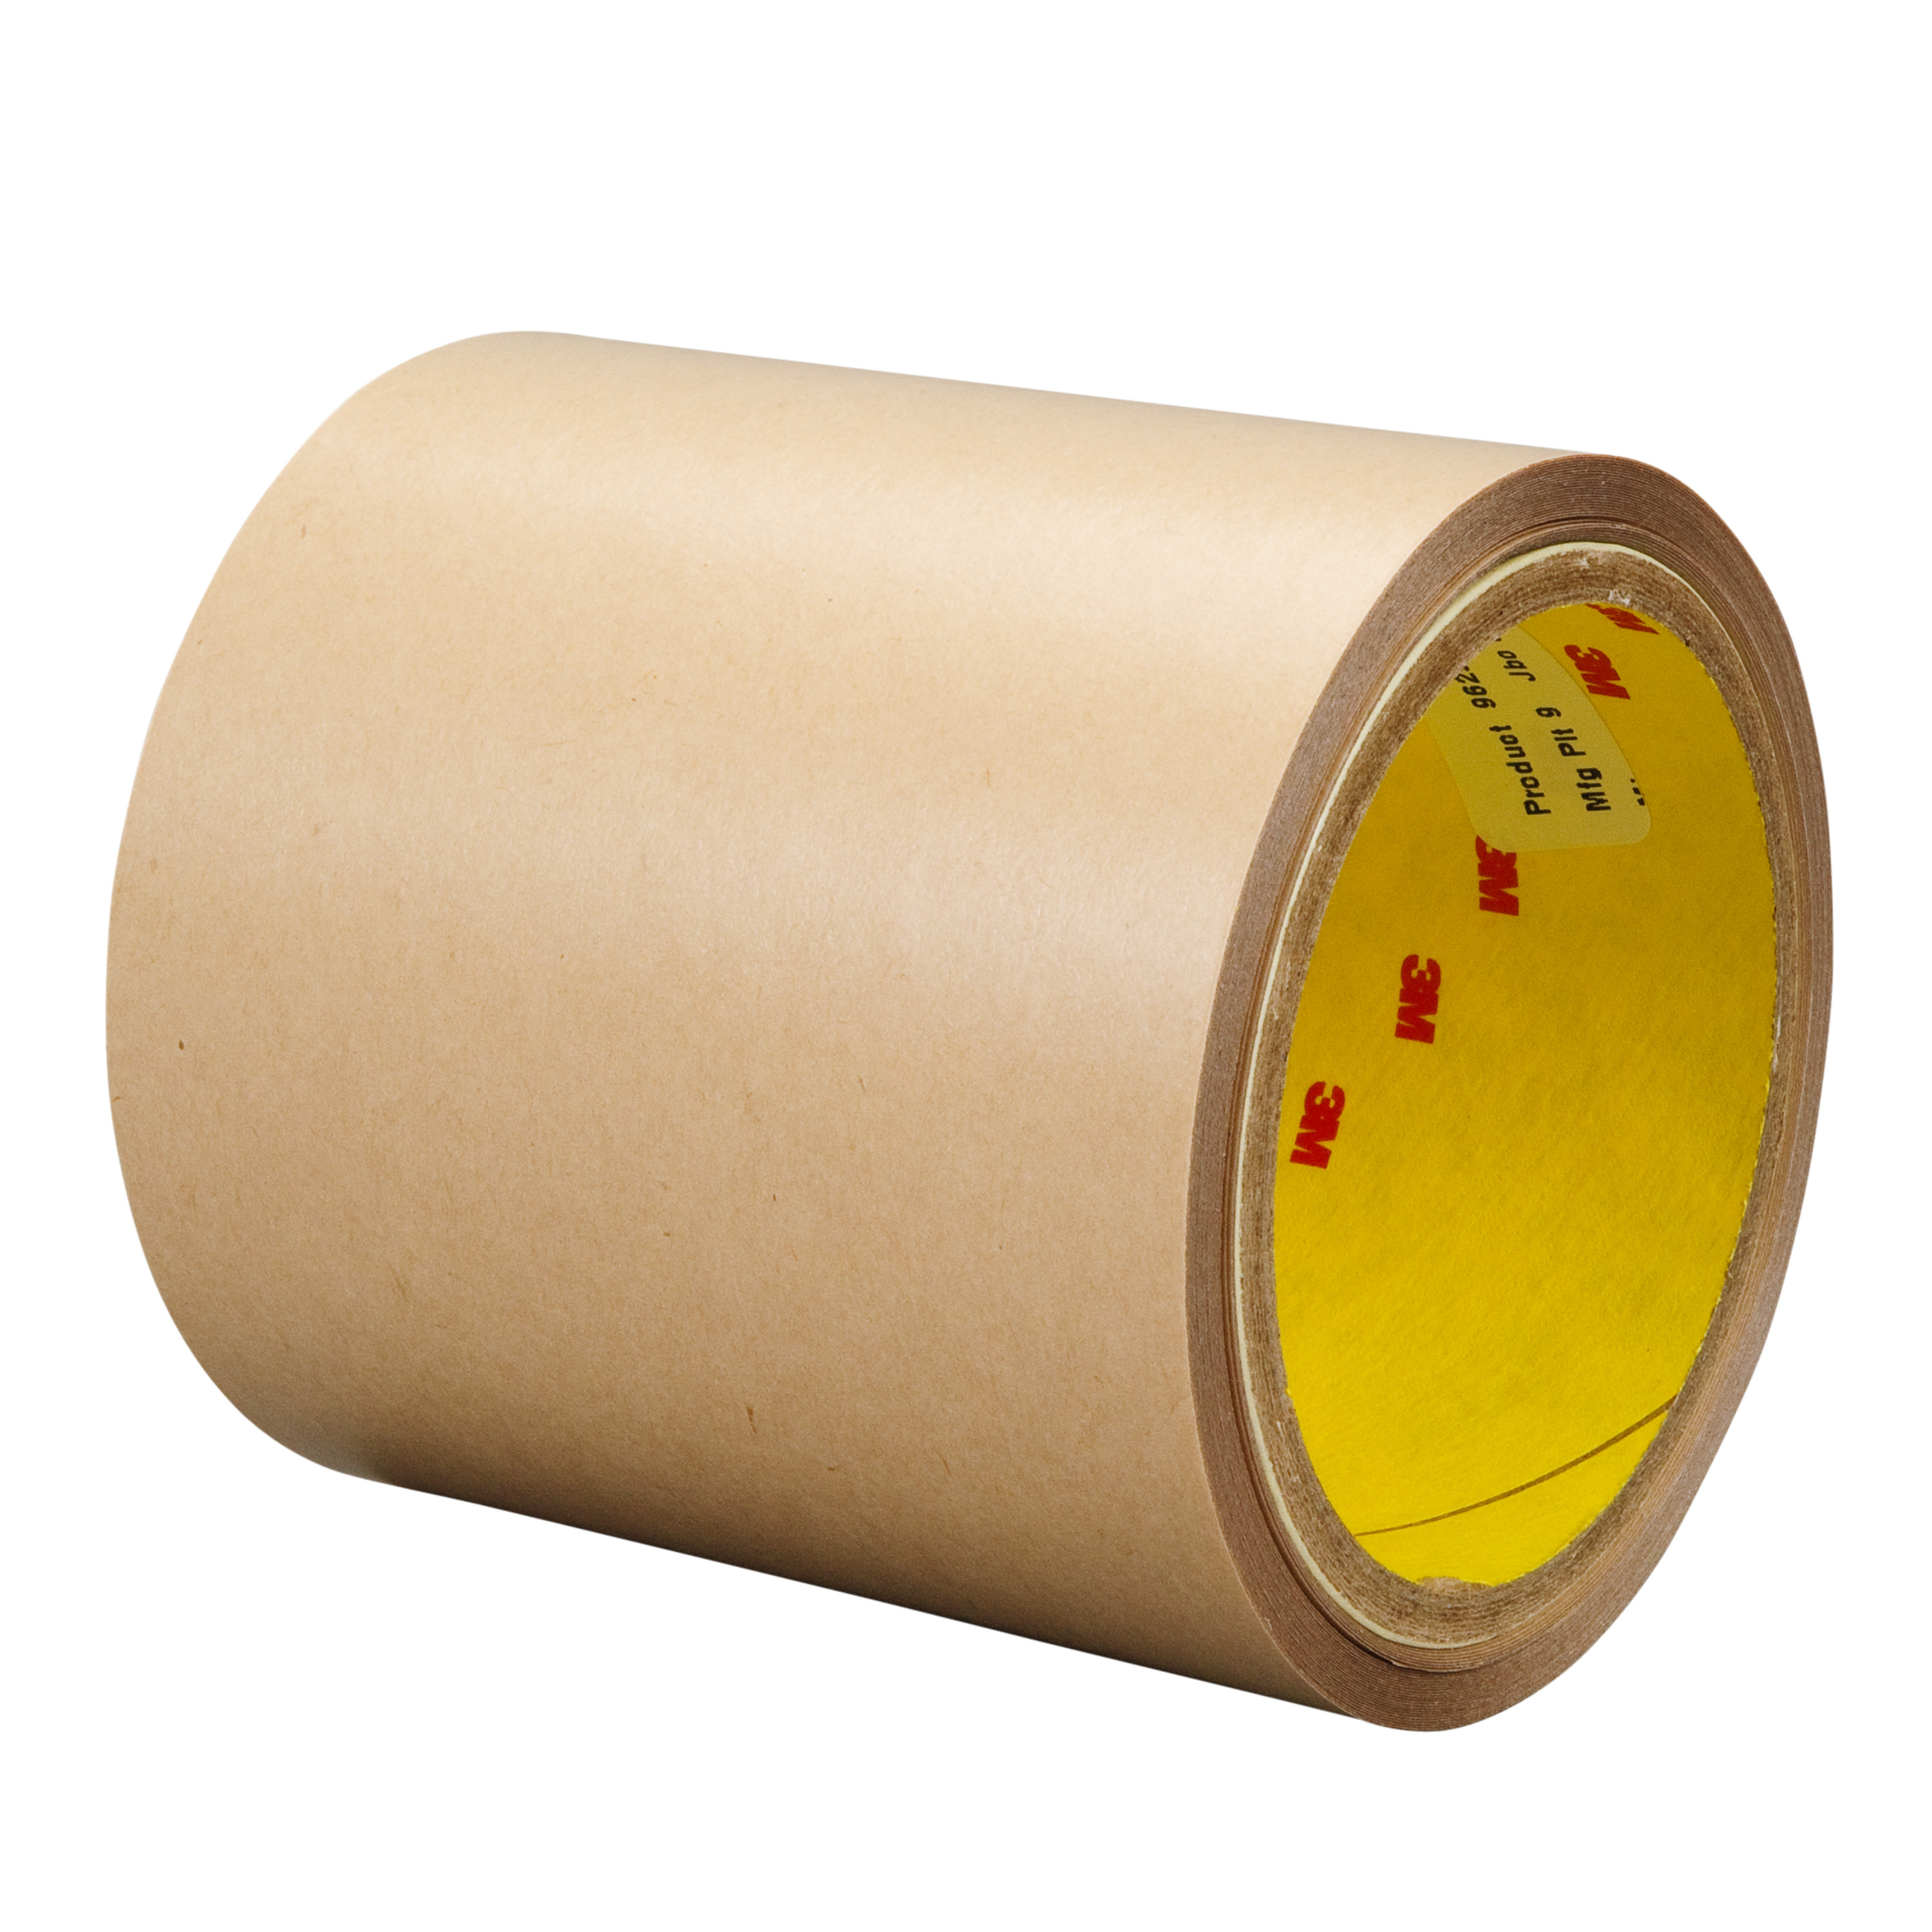 3M™ Double Coated Tape 9629PC, Clear, 4 mil, Roll, Config